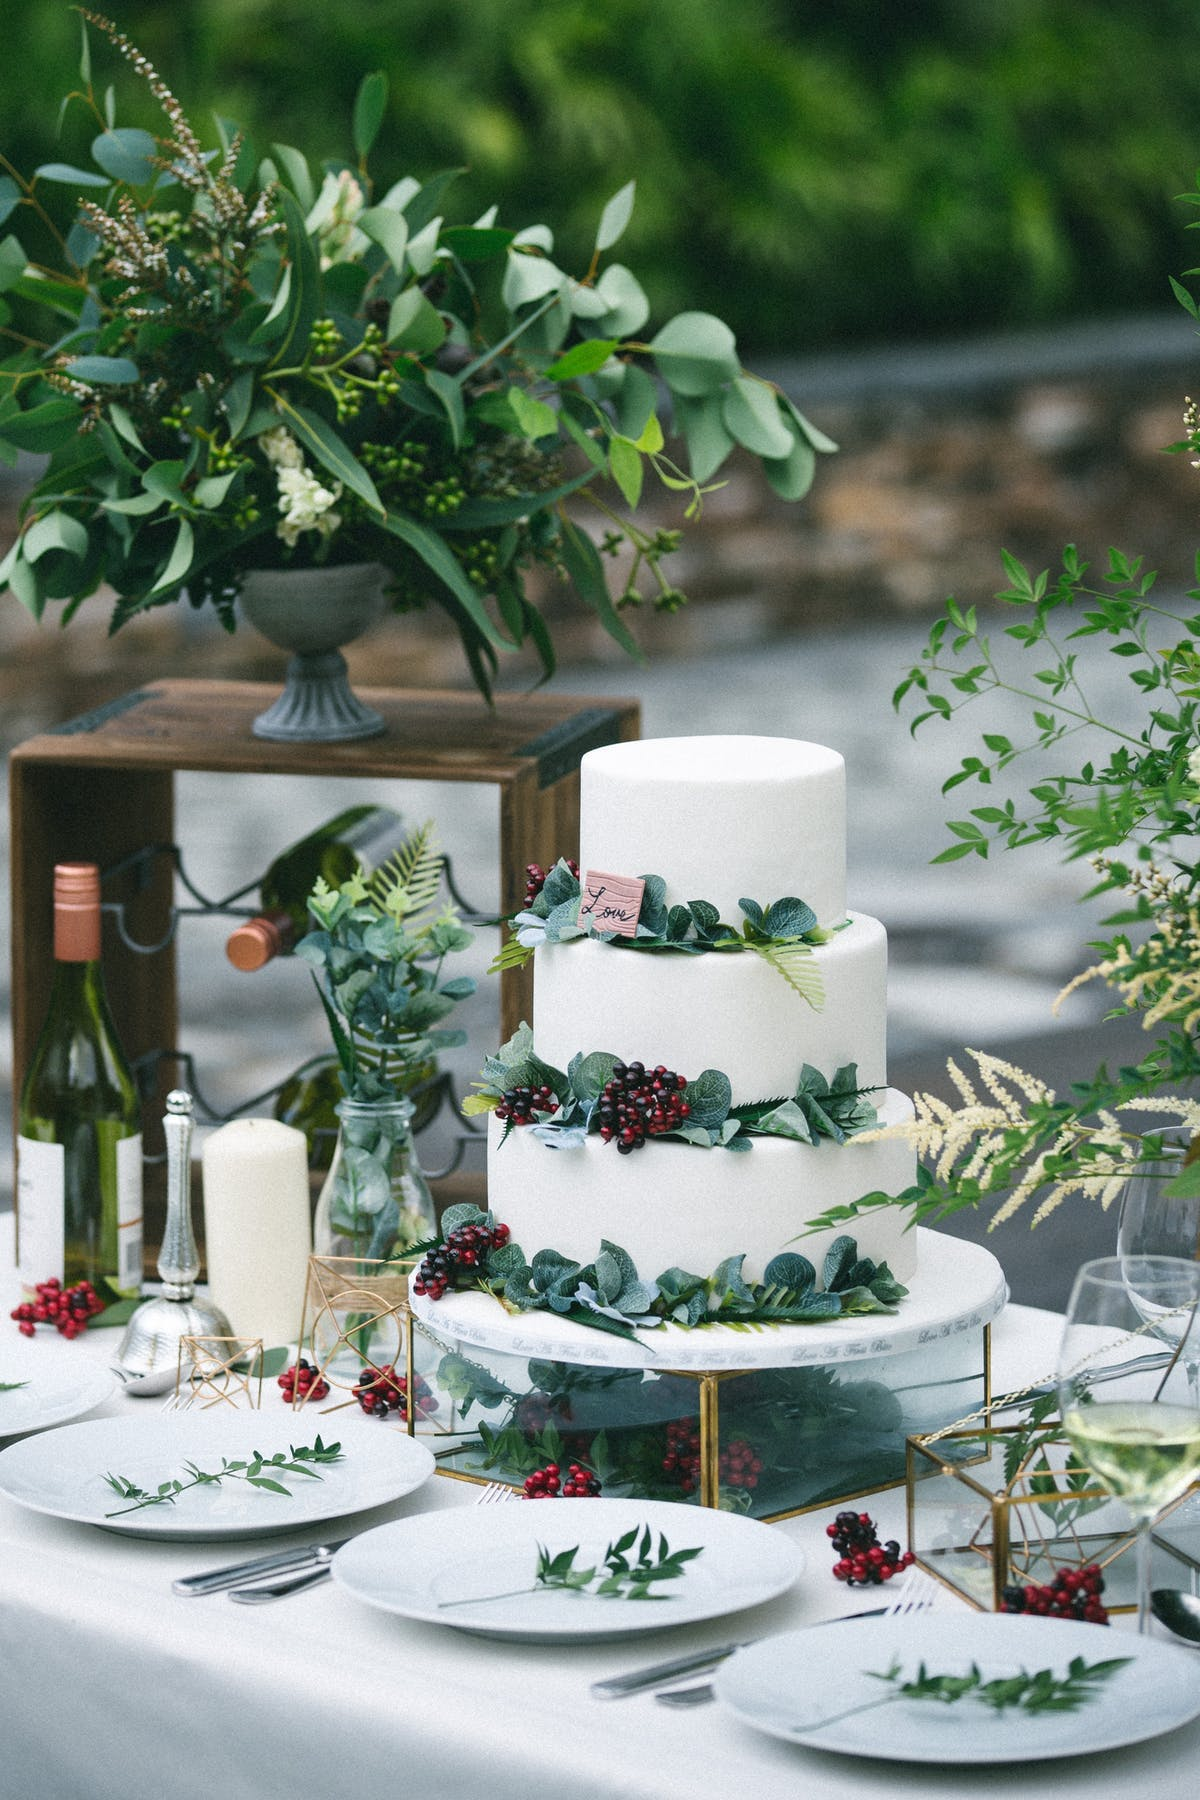 a vase of flowers on a table with a wedding cake